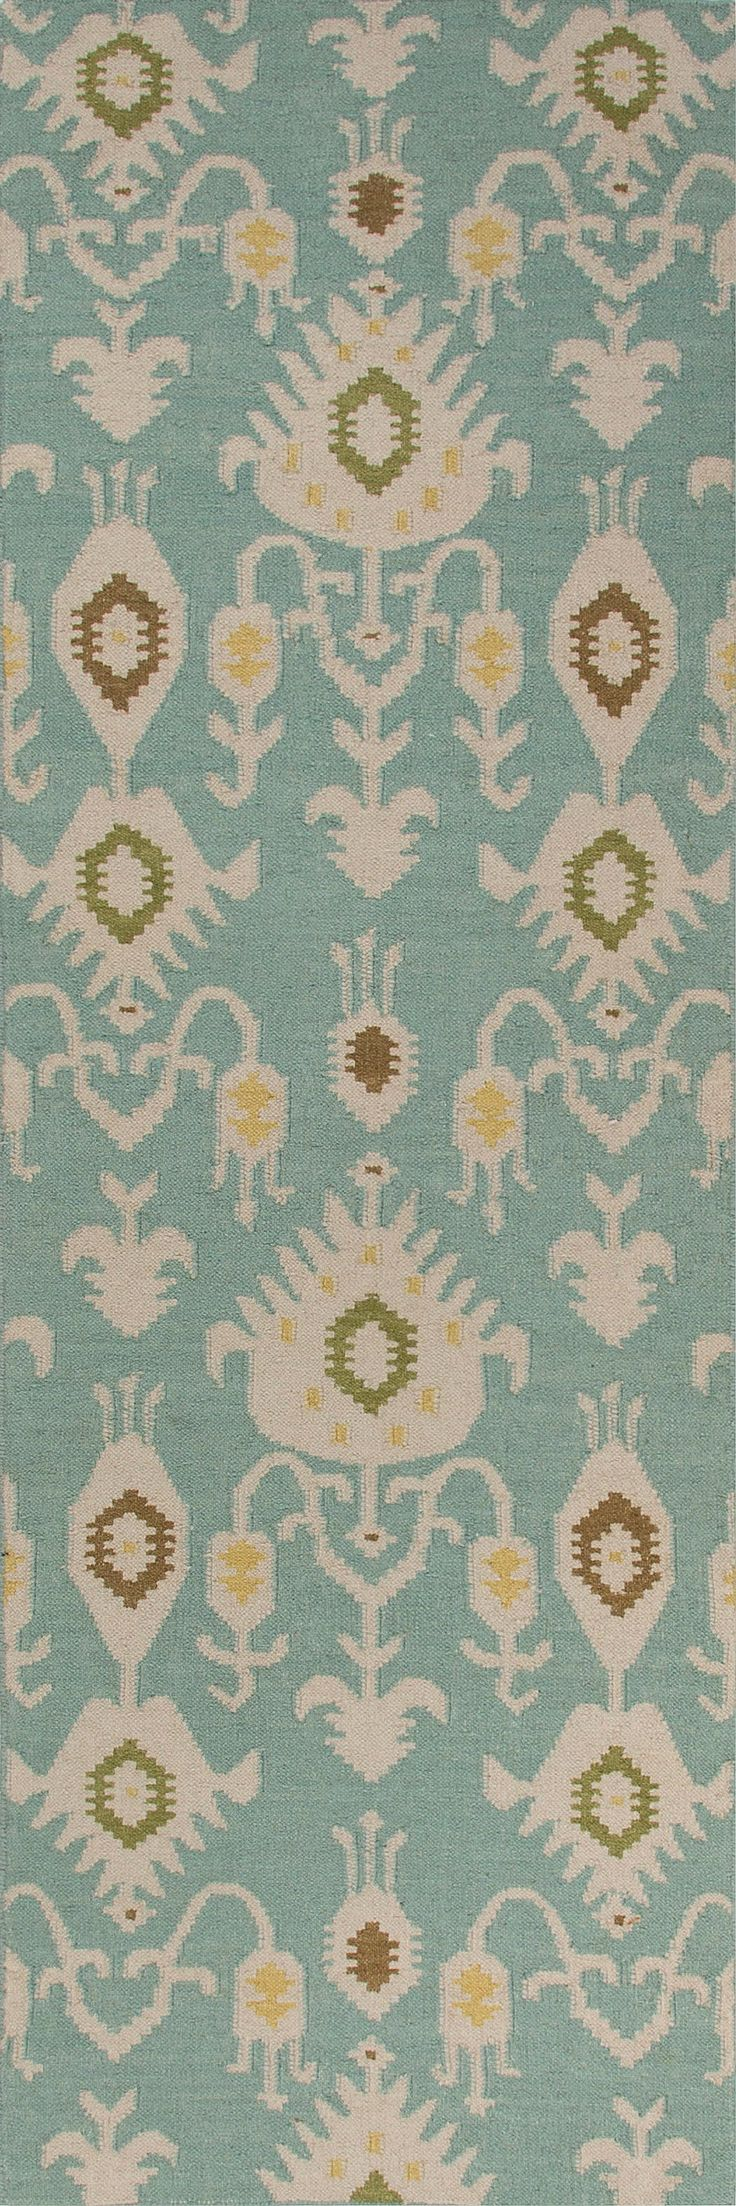 Jaipur Rugs RUG102783 Flat-Weave Tribal Pattern Wool Blue/Ivory Area Rug ( 8x10 )